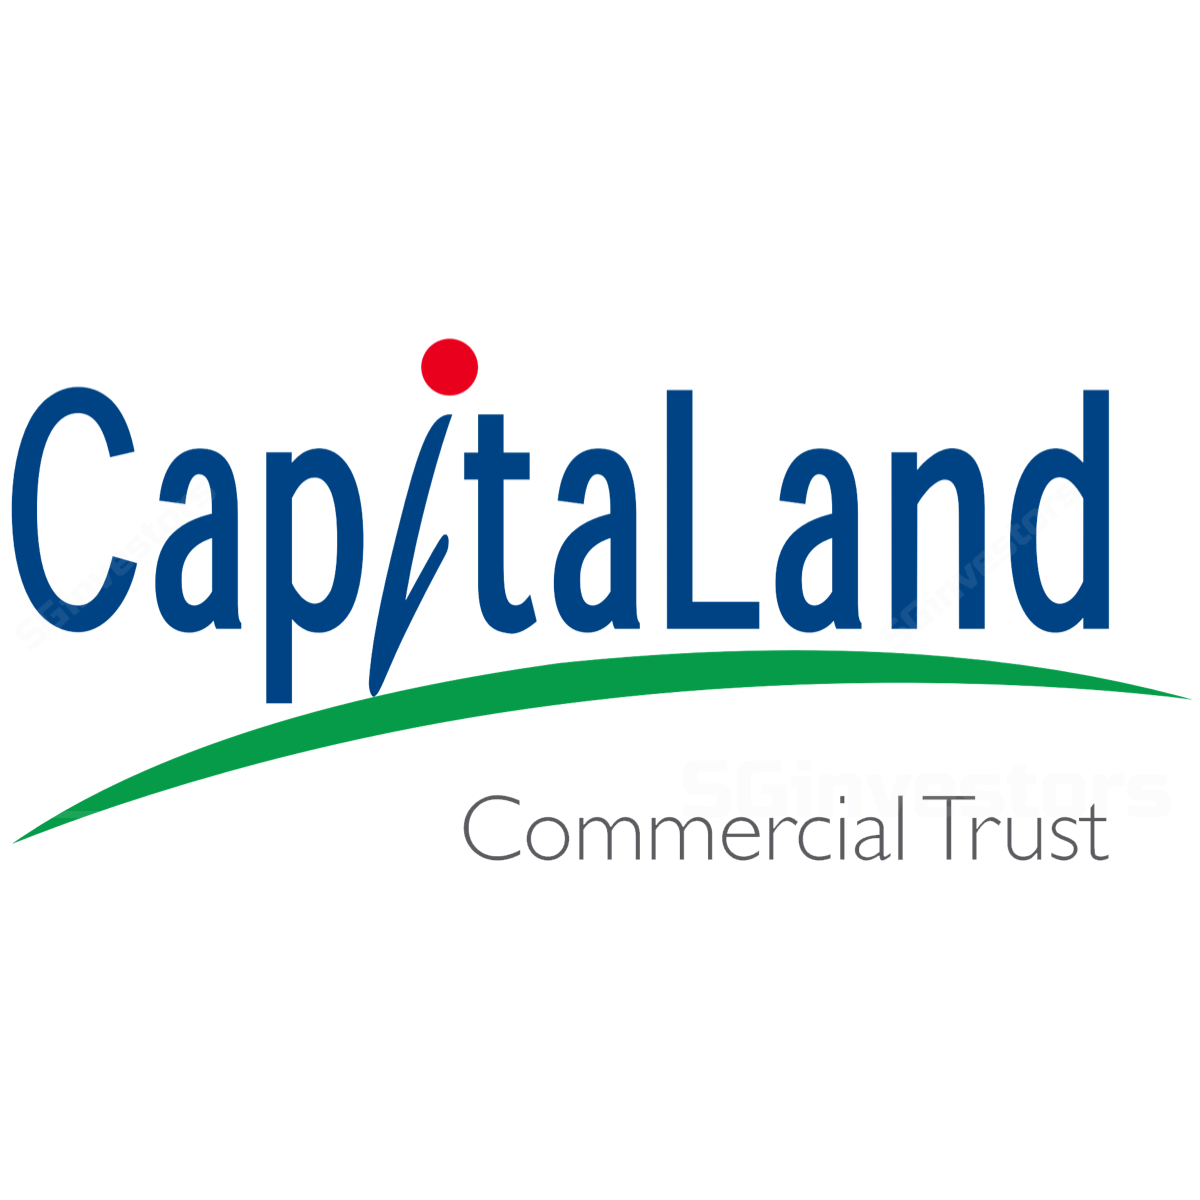 CapitaLand Commercial Trust (CCT SP) - Maybank Kim Eng 2017-04-19: Negative Reversions Not A Surprise; Still Top Pick